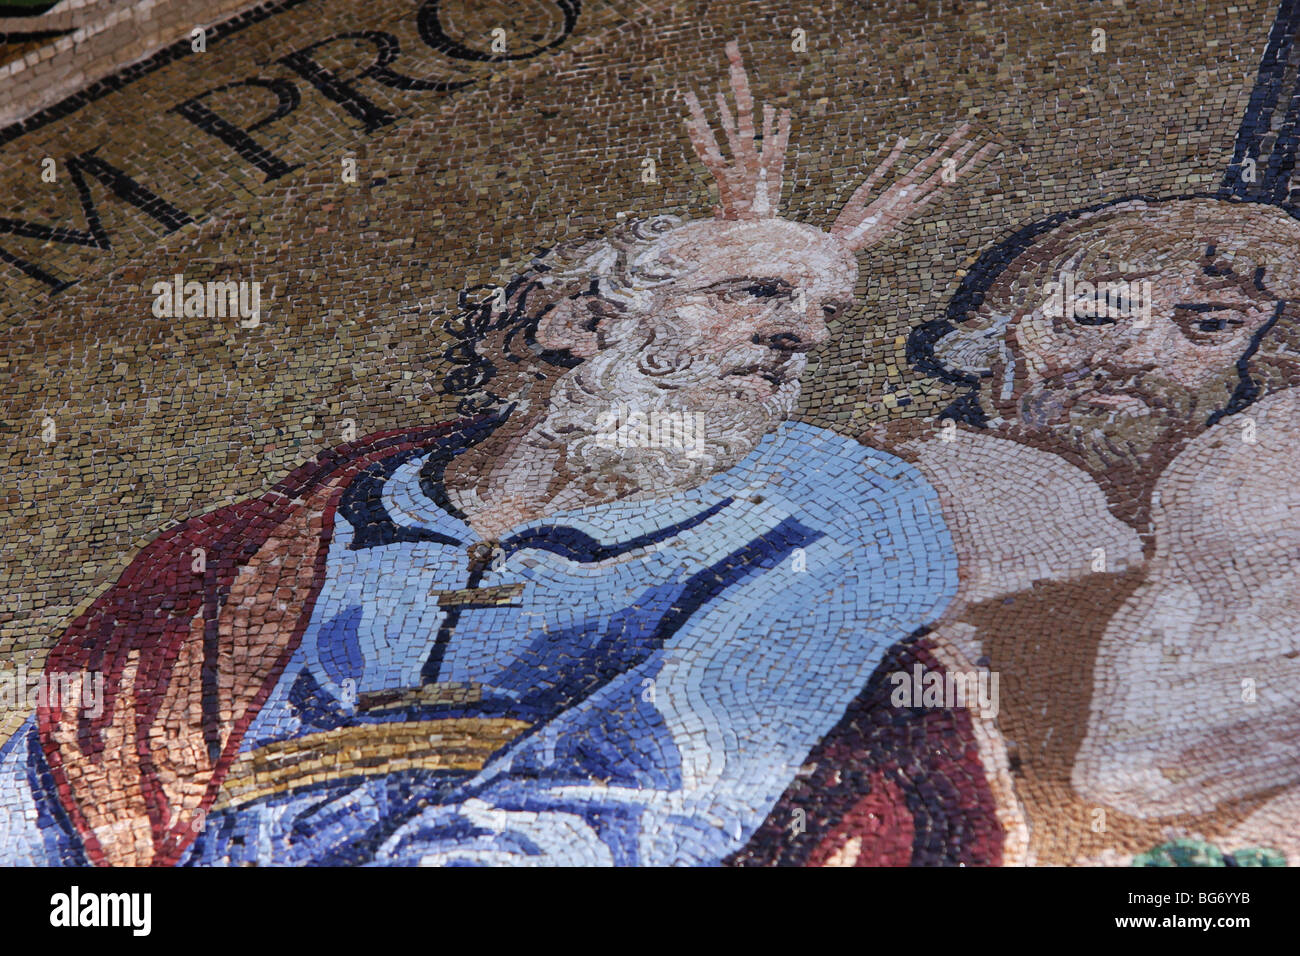 Detail of the mosaic in the Basilica of St. Mark Stock Photo